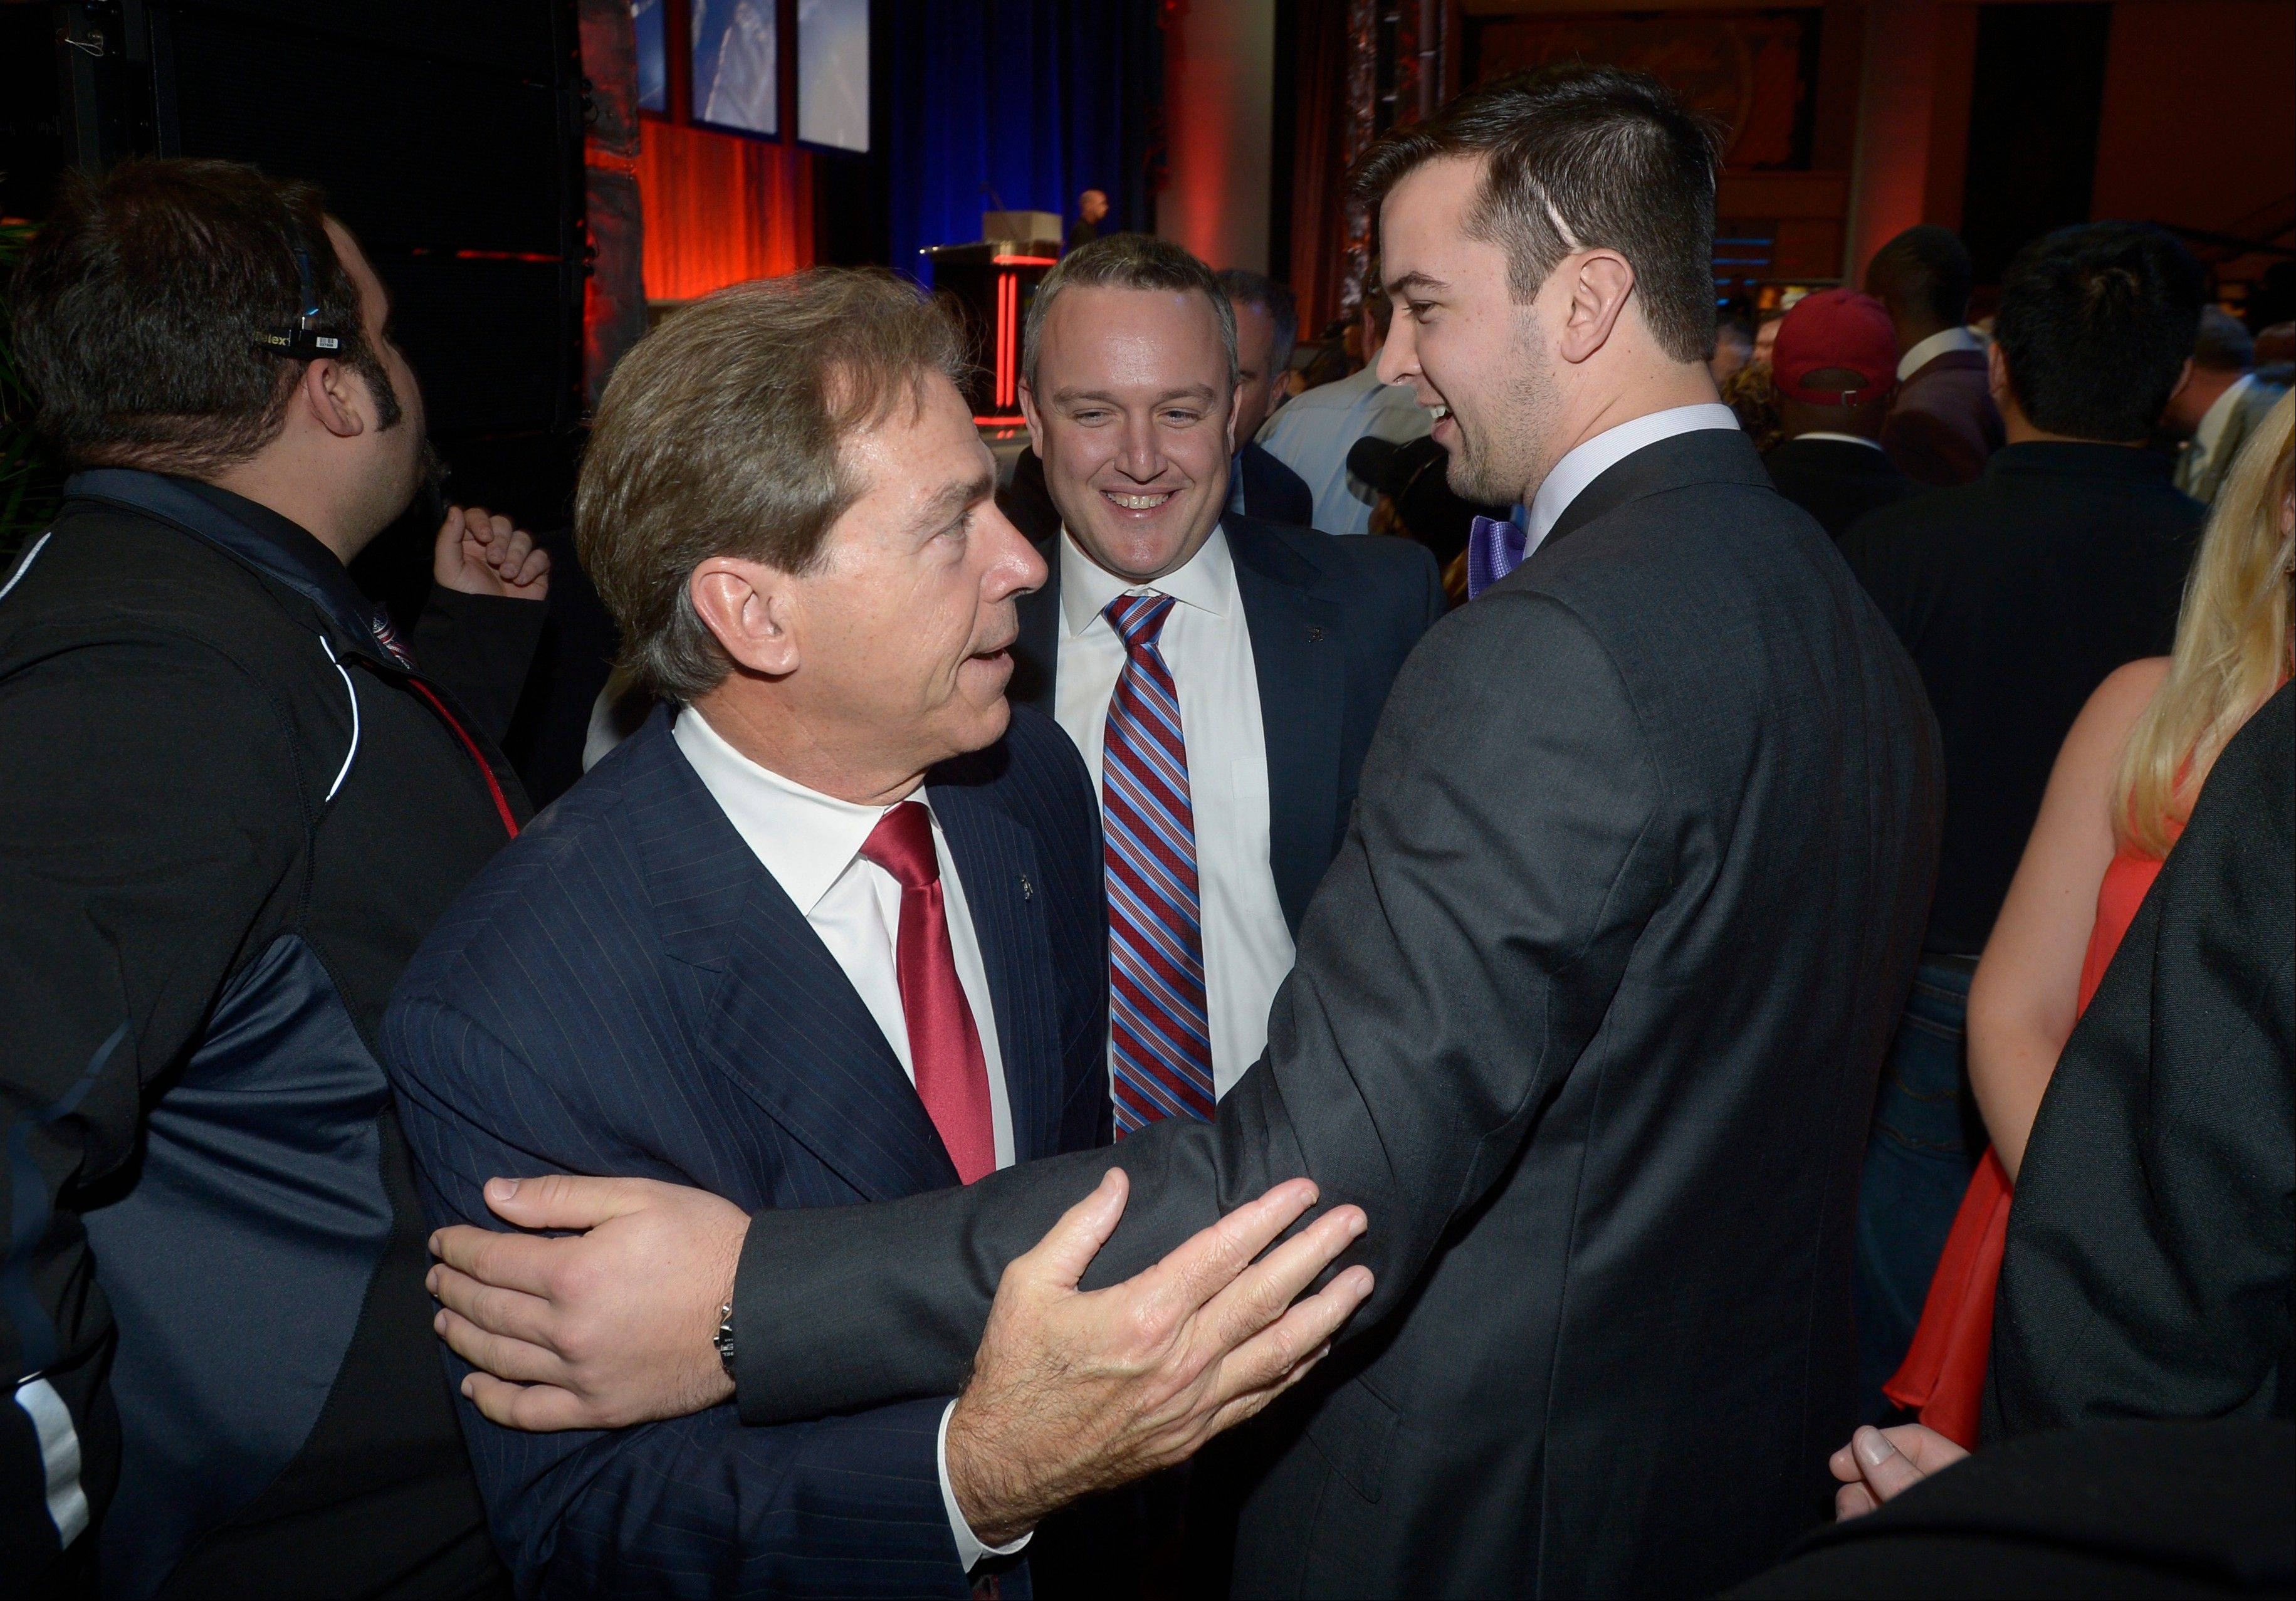 Alabama quarterback AJ McCarron, right, is congratulated by head coach Nick Saban, left, as Jeff Purinton, football media relations director, watches after McCarron won the Maxwell Award during the College Football Awards show in Lake Buena Vista, Fla., Thursday, Dec. 12, 2013. (AP Photo/Phelan M. Ebenhack)